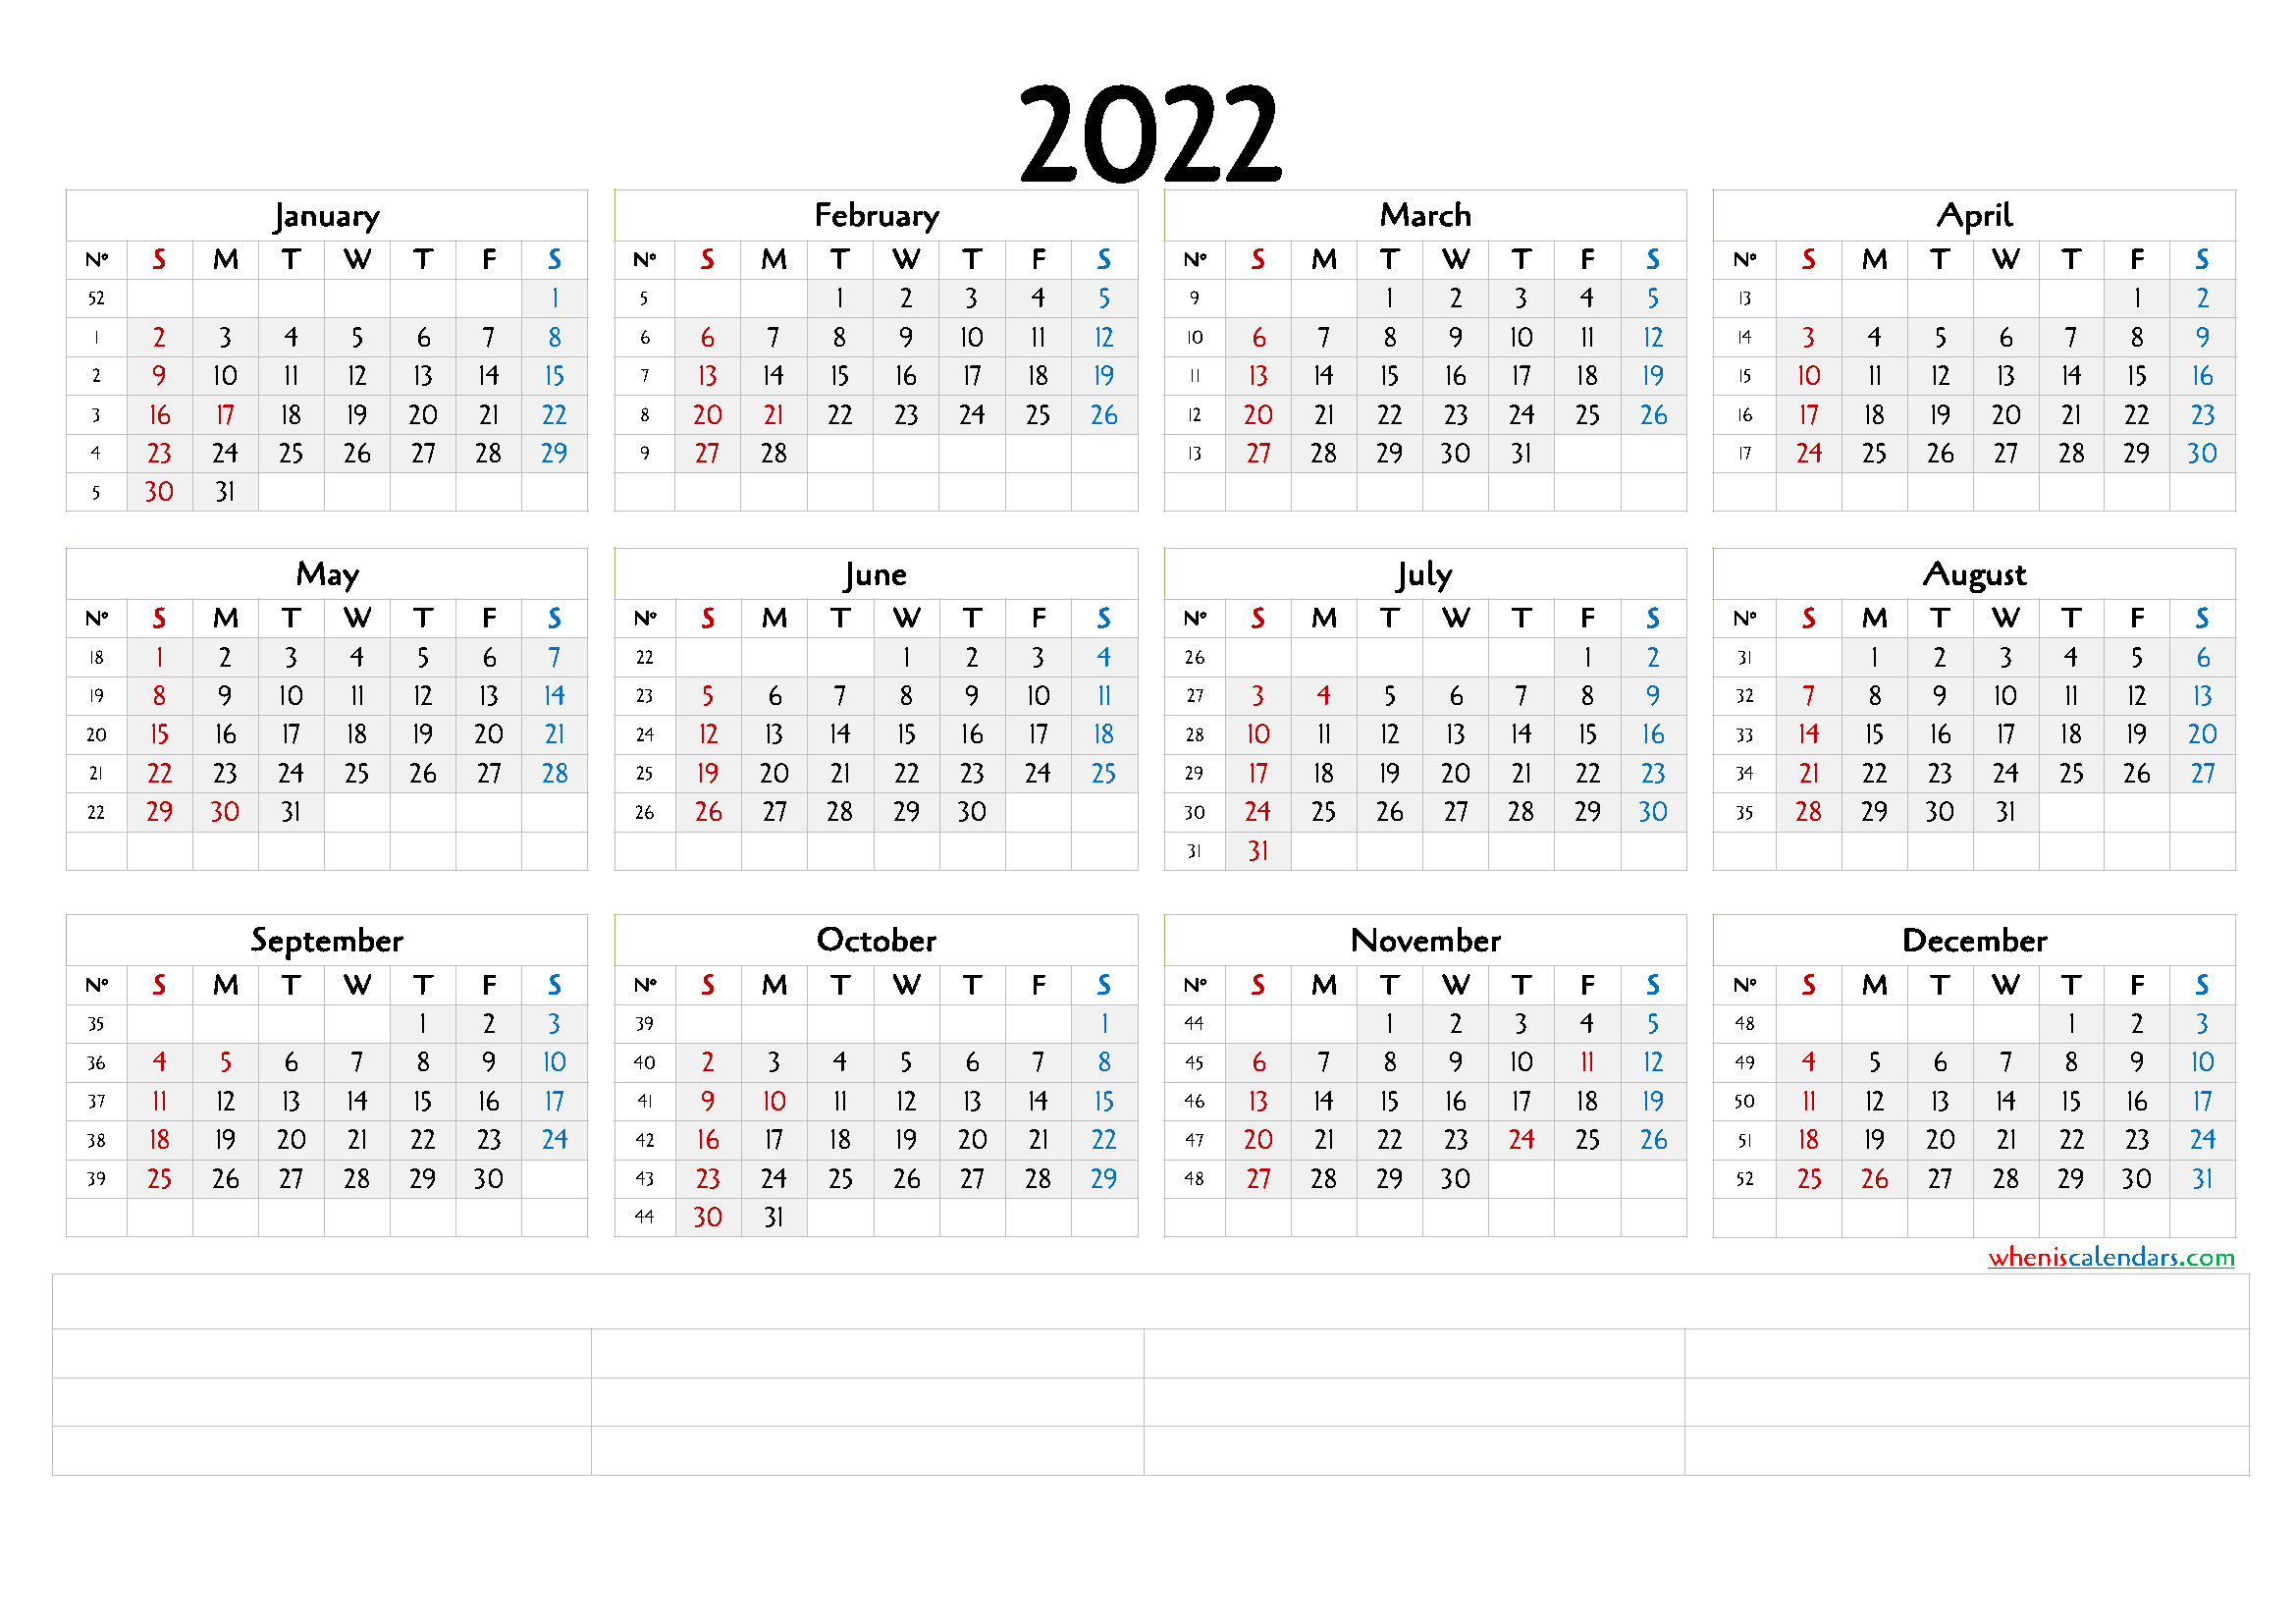 2022 Monthly Printable Calendar.Downloadable 2022 Monthly Calendar Premium Templates Free Printable 2021 Monthly Calendar With Holidays